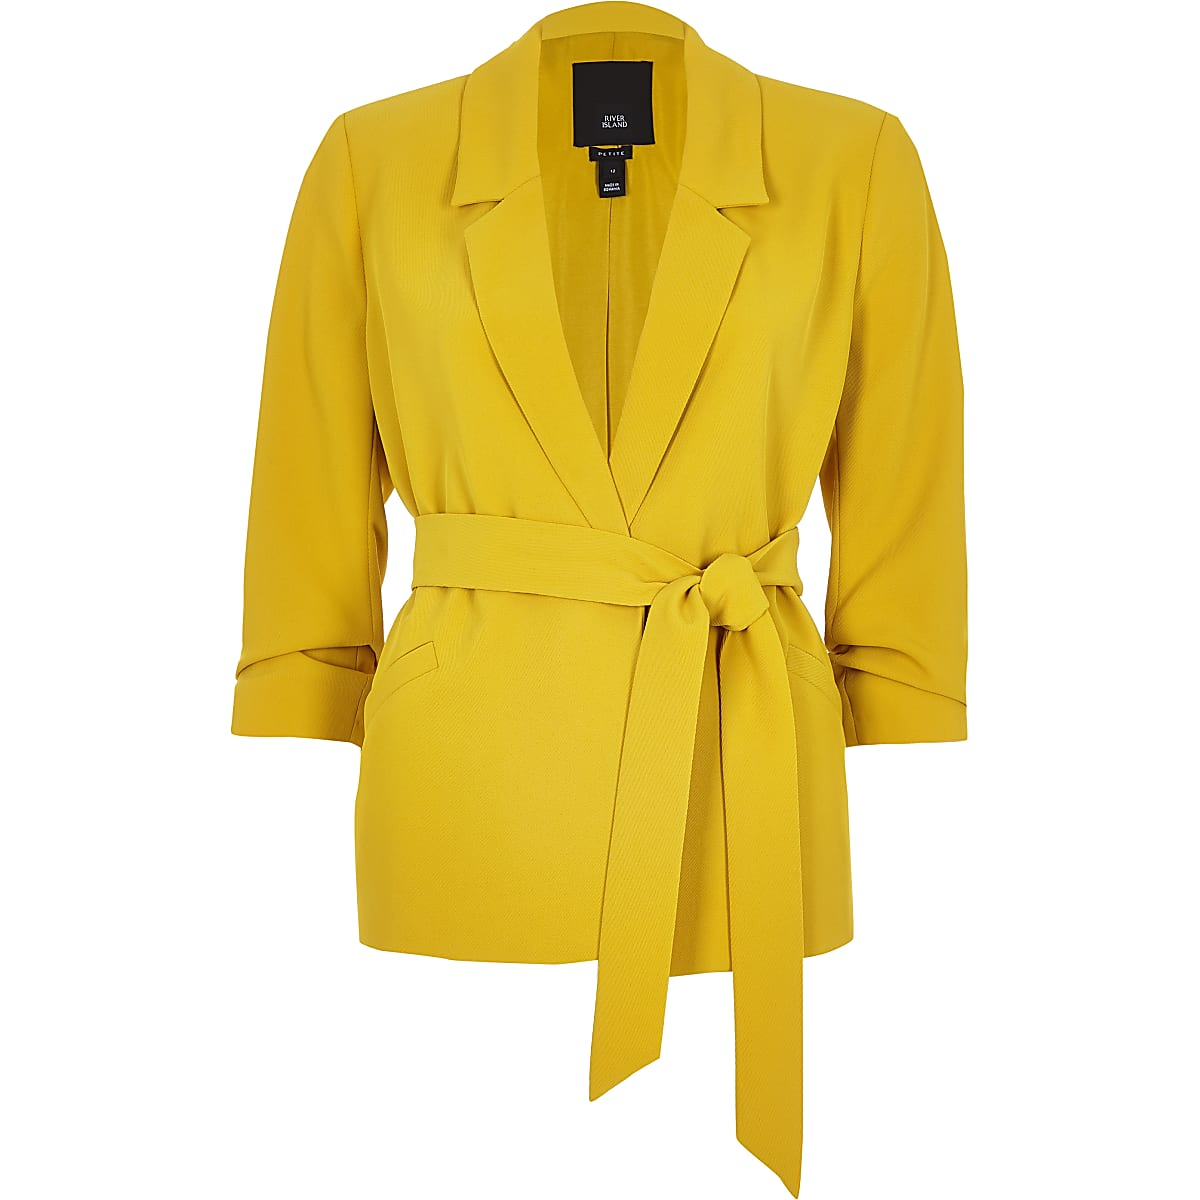 b431e30a0 Petite yellow ruched sleeve belted blazer